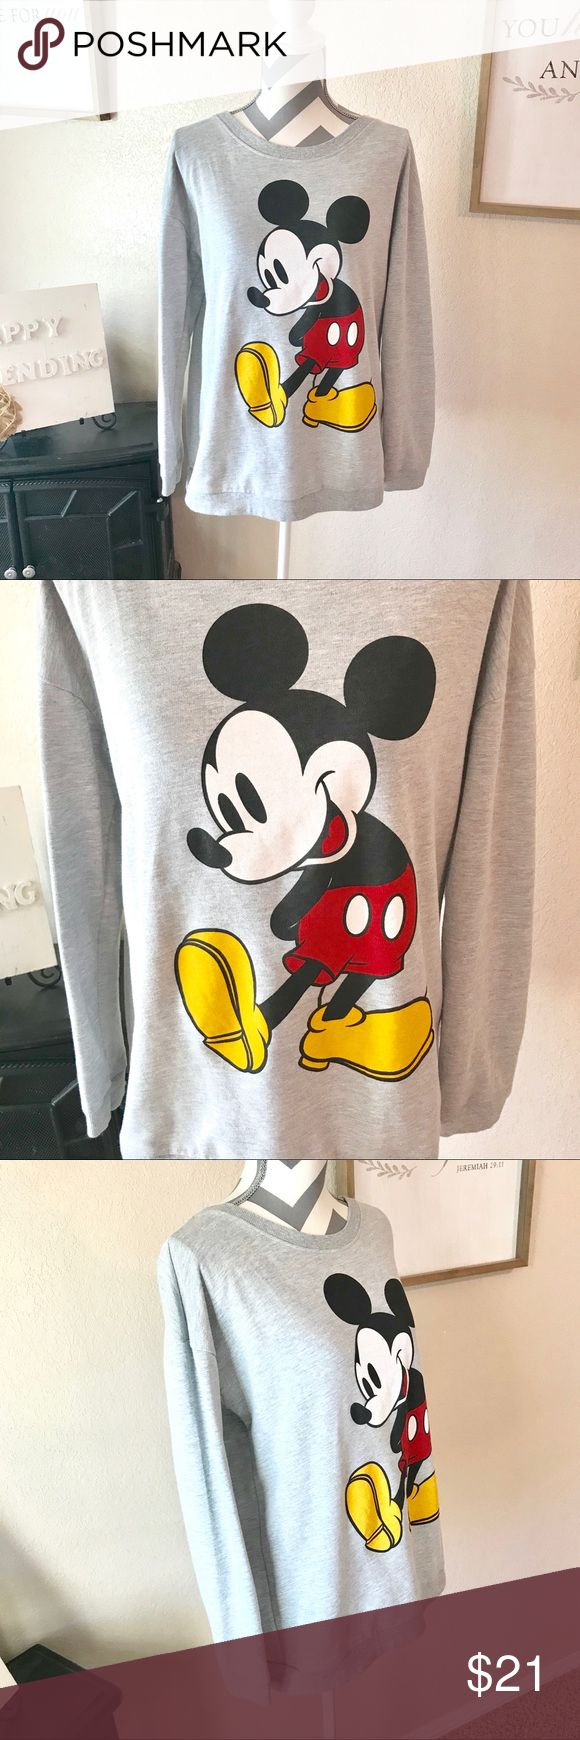 Disney Mickey Mouse pullover sweatshirt Preowned, but in great condition!! No stains or peeling.  Super cute and ready for a Disney lover! Disney Other